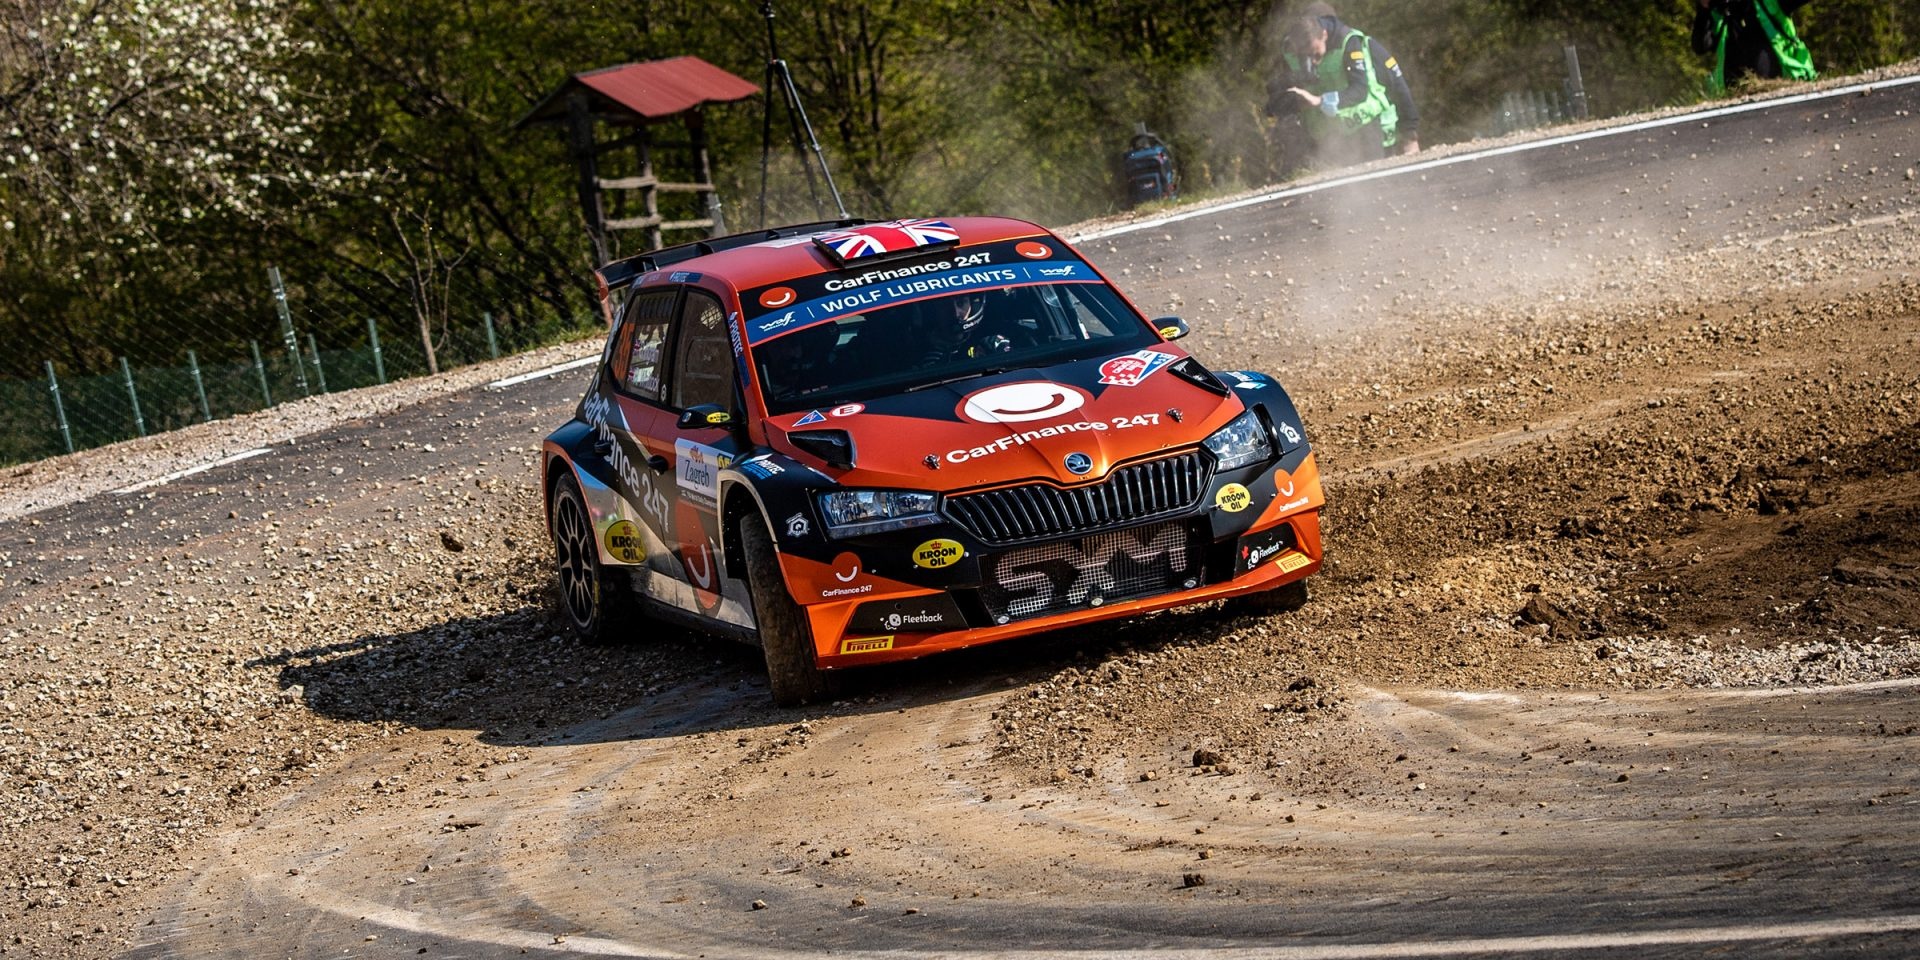 Download Croatia Rally Wallpapers for Your Phone